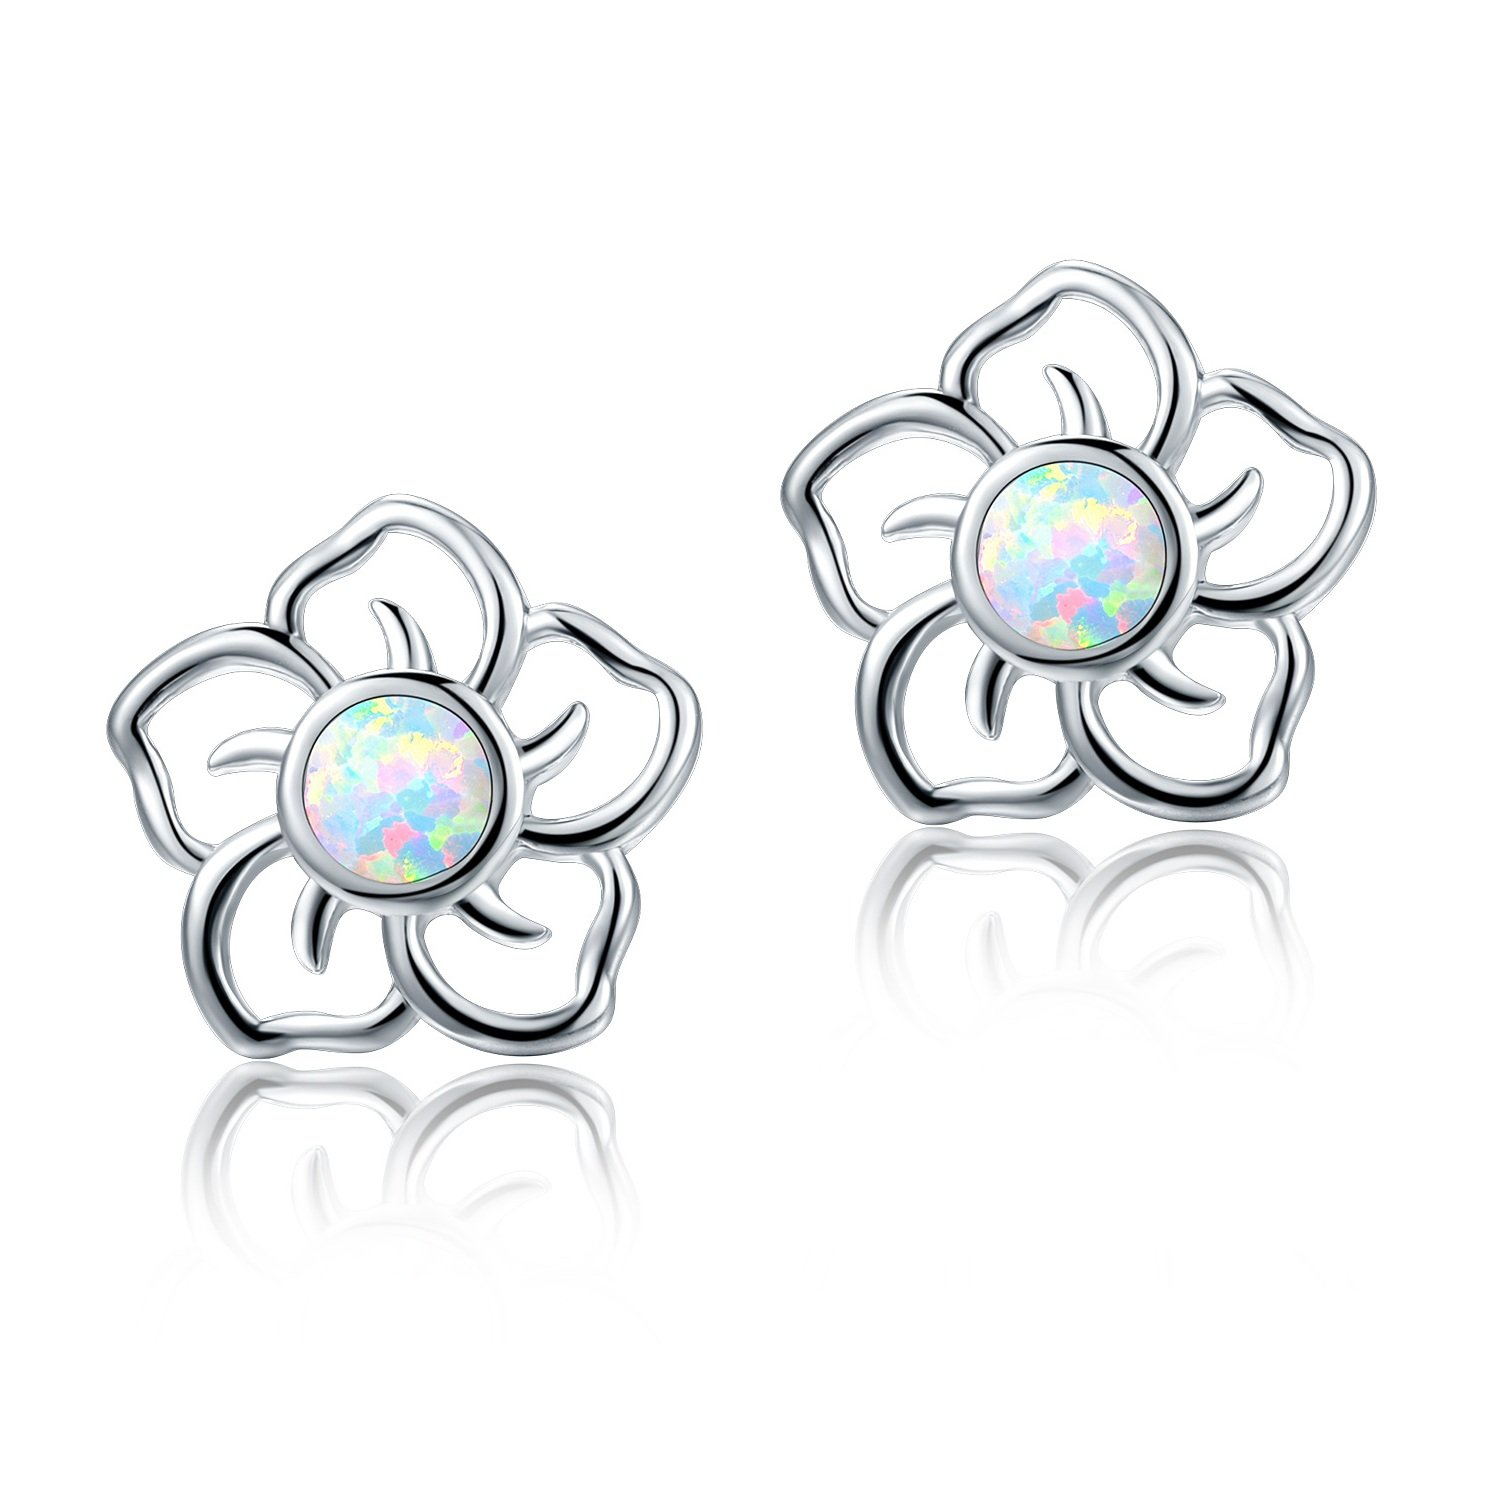 White Gold Plated Flower Opal Stud Earrings Hypoallergenic Jewelry Gift for Women